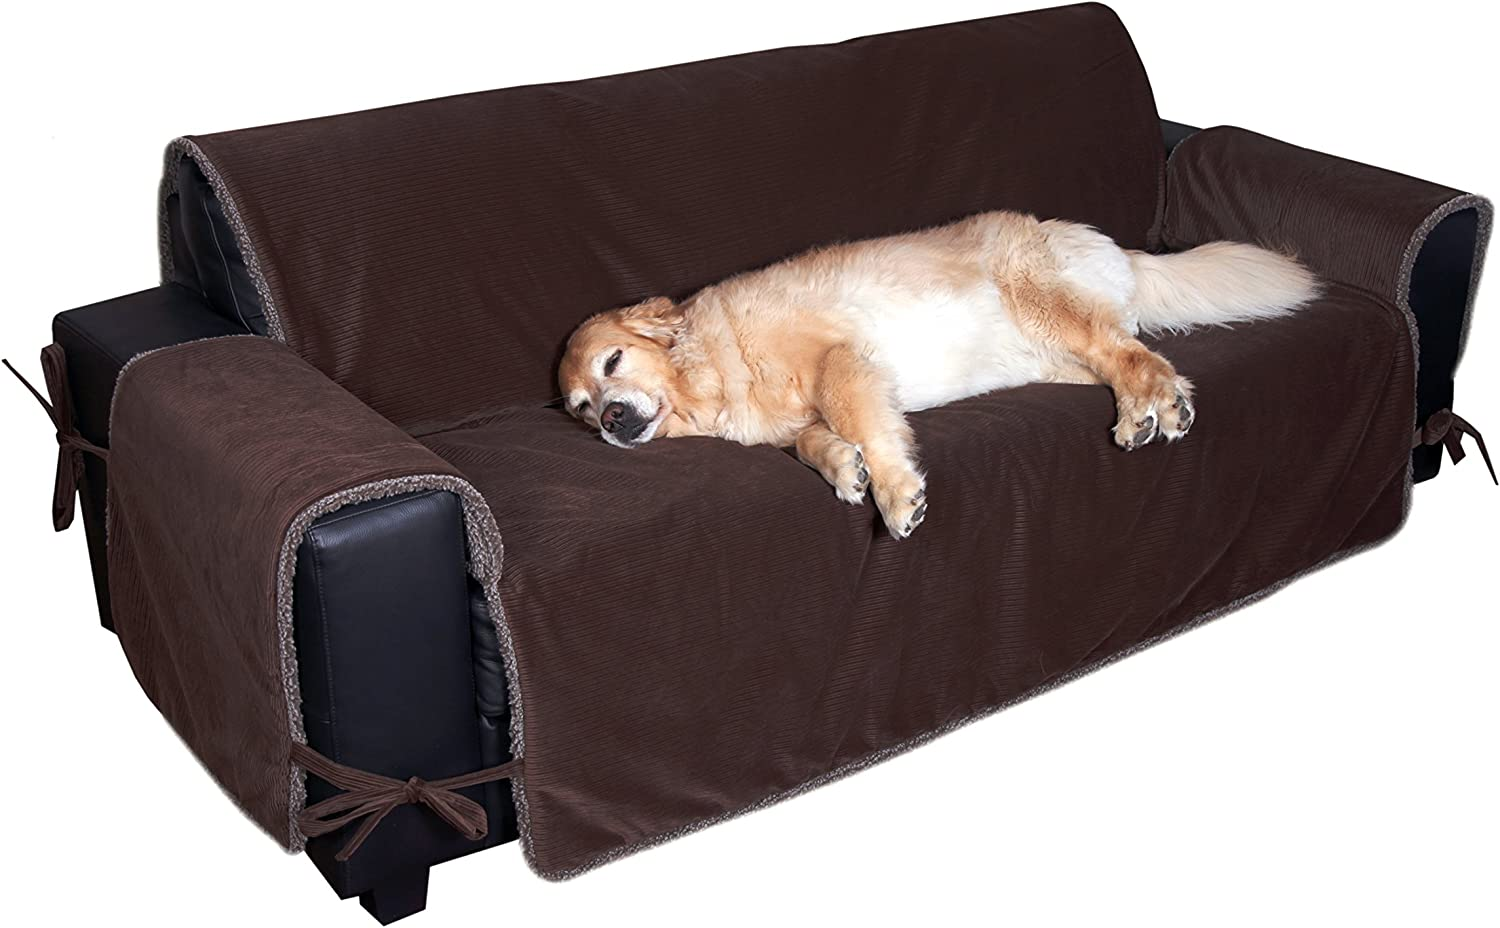 Floppy Ears Design Waterproof Corduroy and Fleece Sit and Stay Couch Predector Furniture Cover (Large, Three Cushion Couch Size, Chocolate)